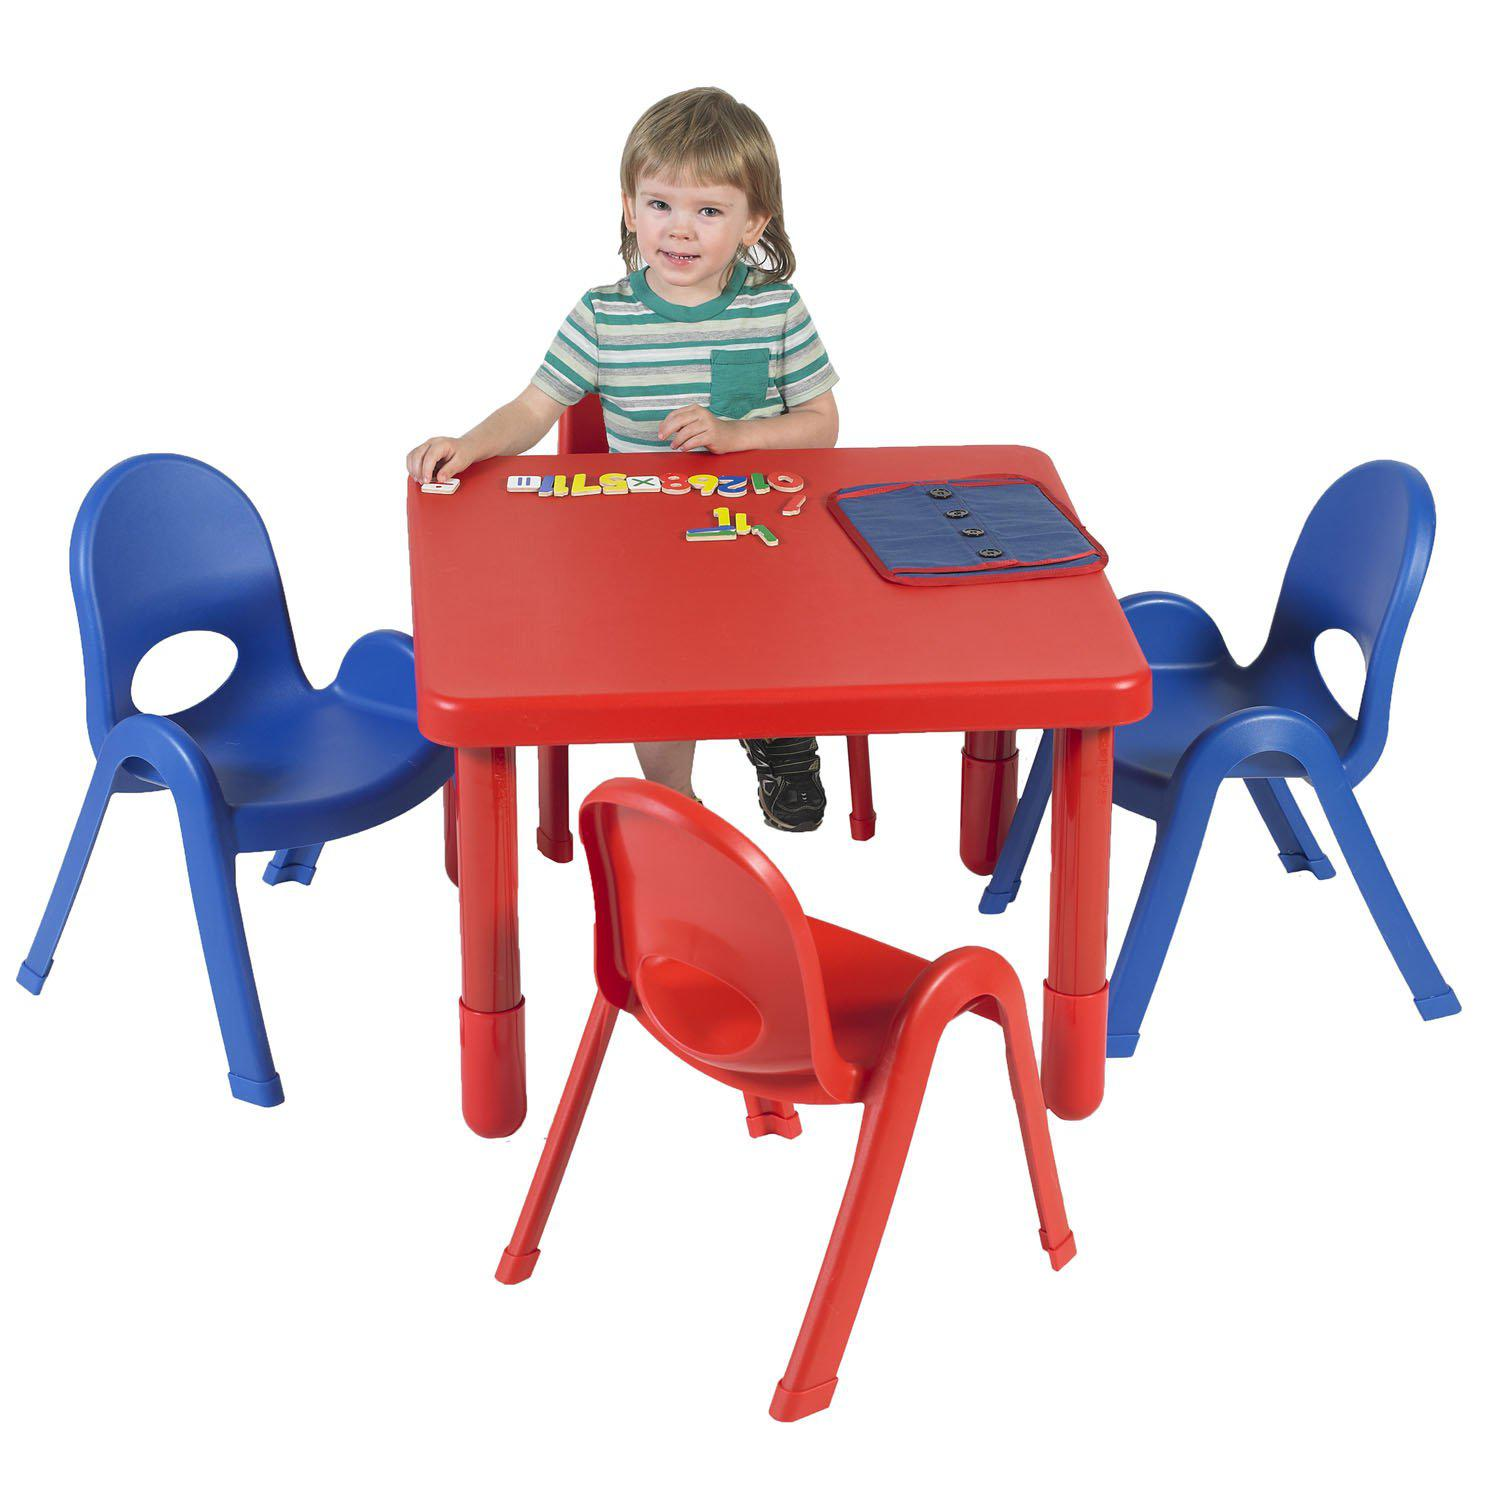 "Toddler MyValue™ Table and Chair Set - 28"" Square x 20""-High Candy Apple Red Table with 2 Royal Blue and 2 Candy Apple Red 11""-High Chairs"